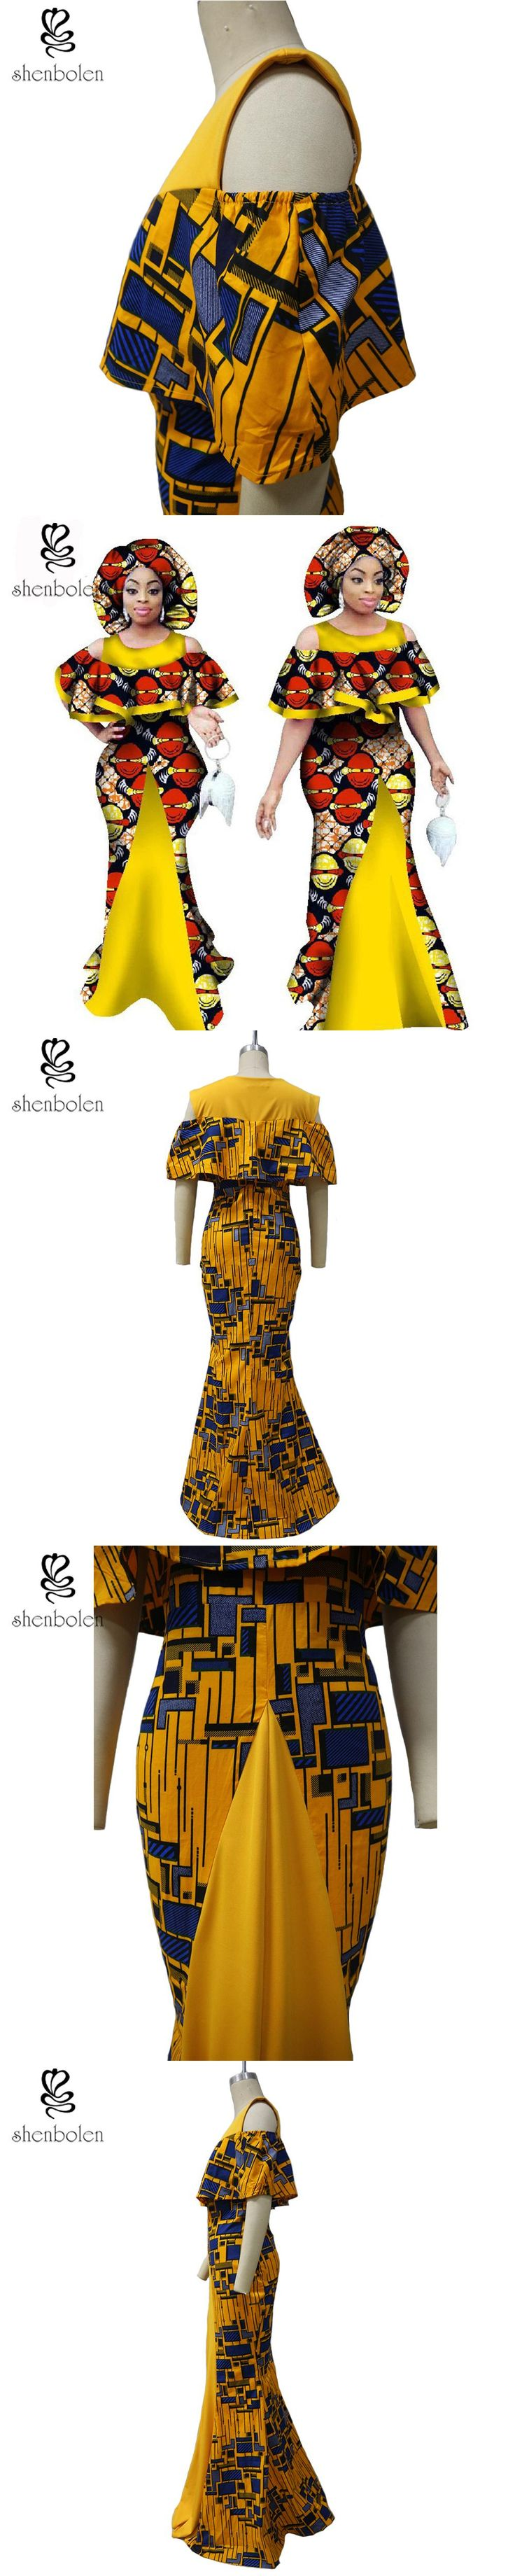 2017 African dresses for women wax printing ankara fabric clothes fashion dress traditional african clothing plus size XS-5XL